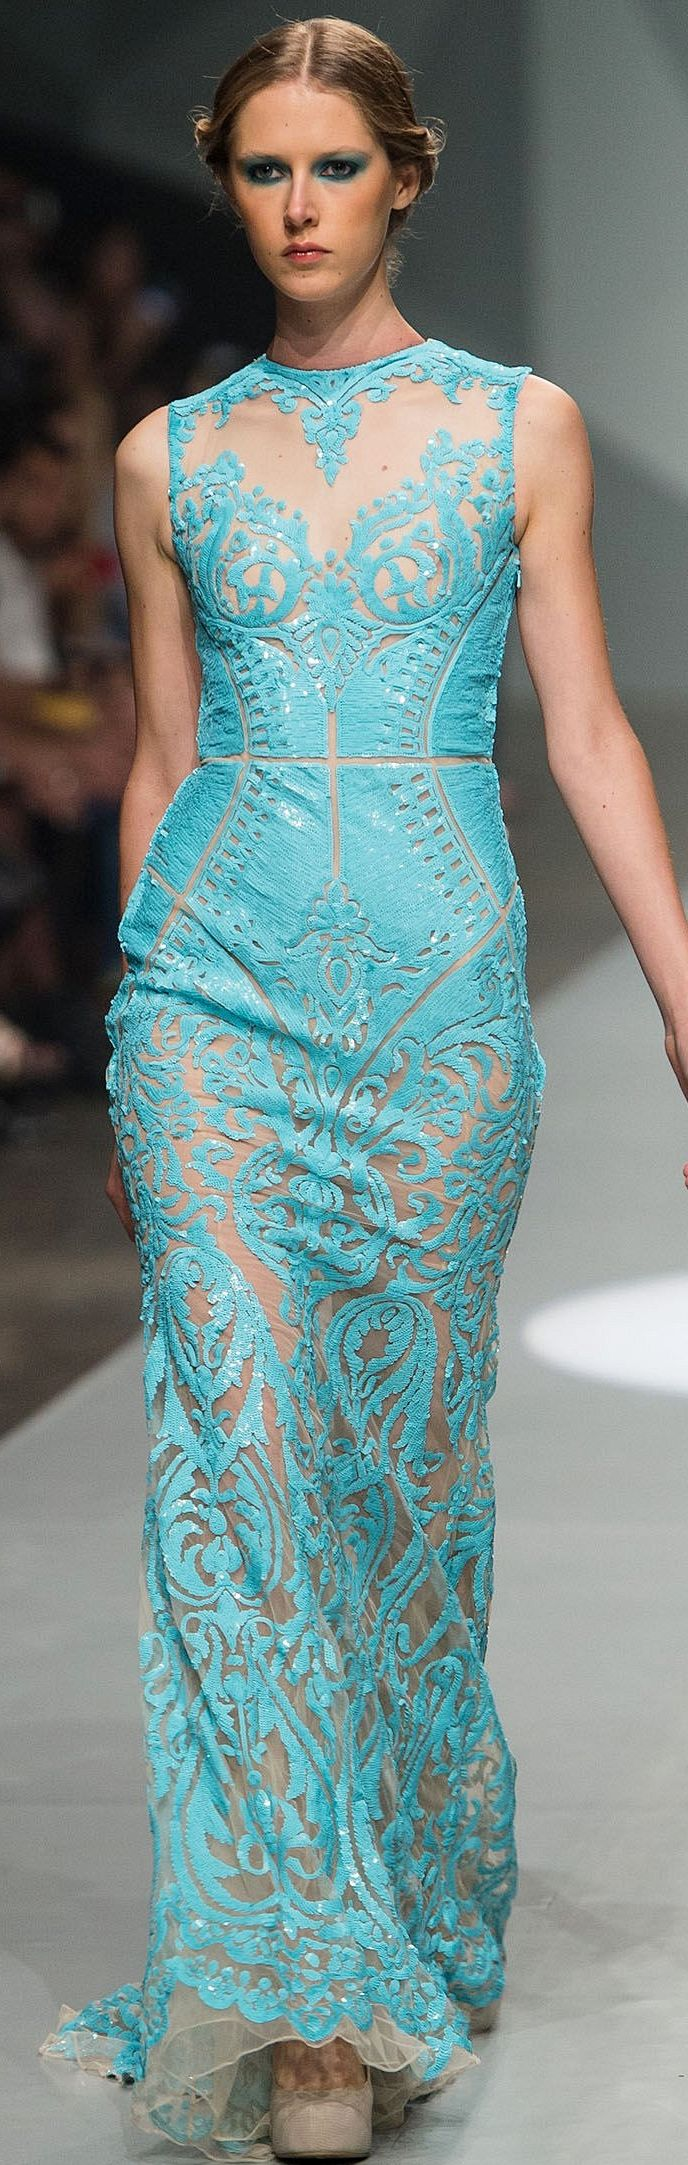 128 best Michael Cinco images on Pinterest | Homecoming dresses ...